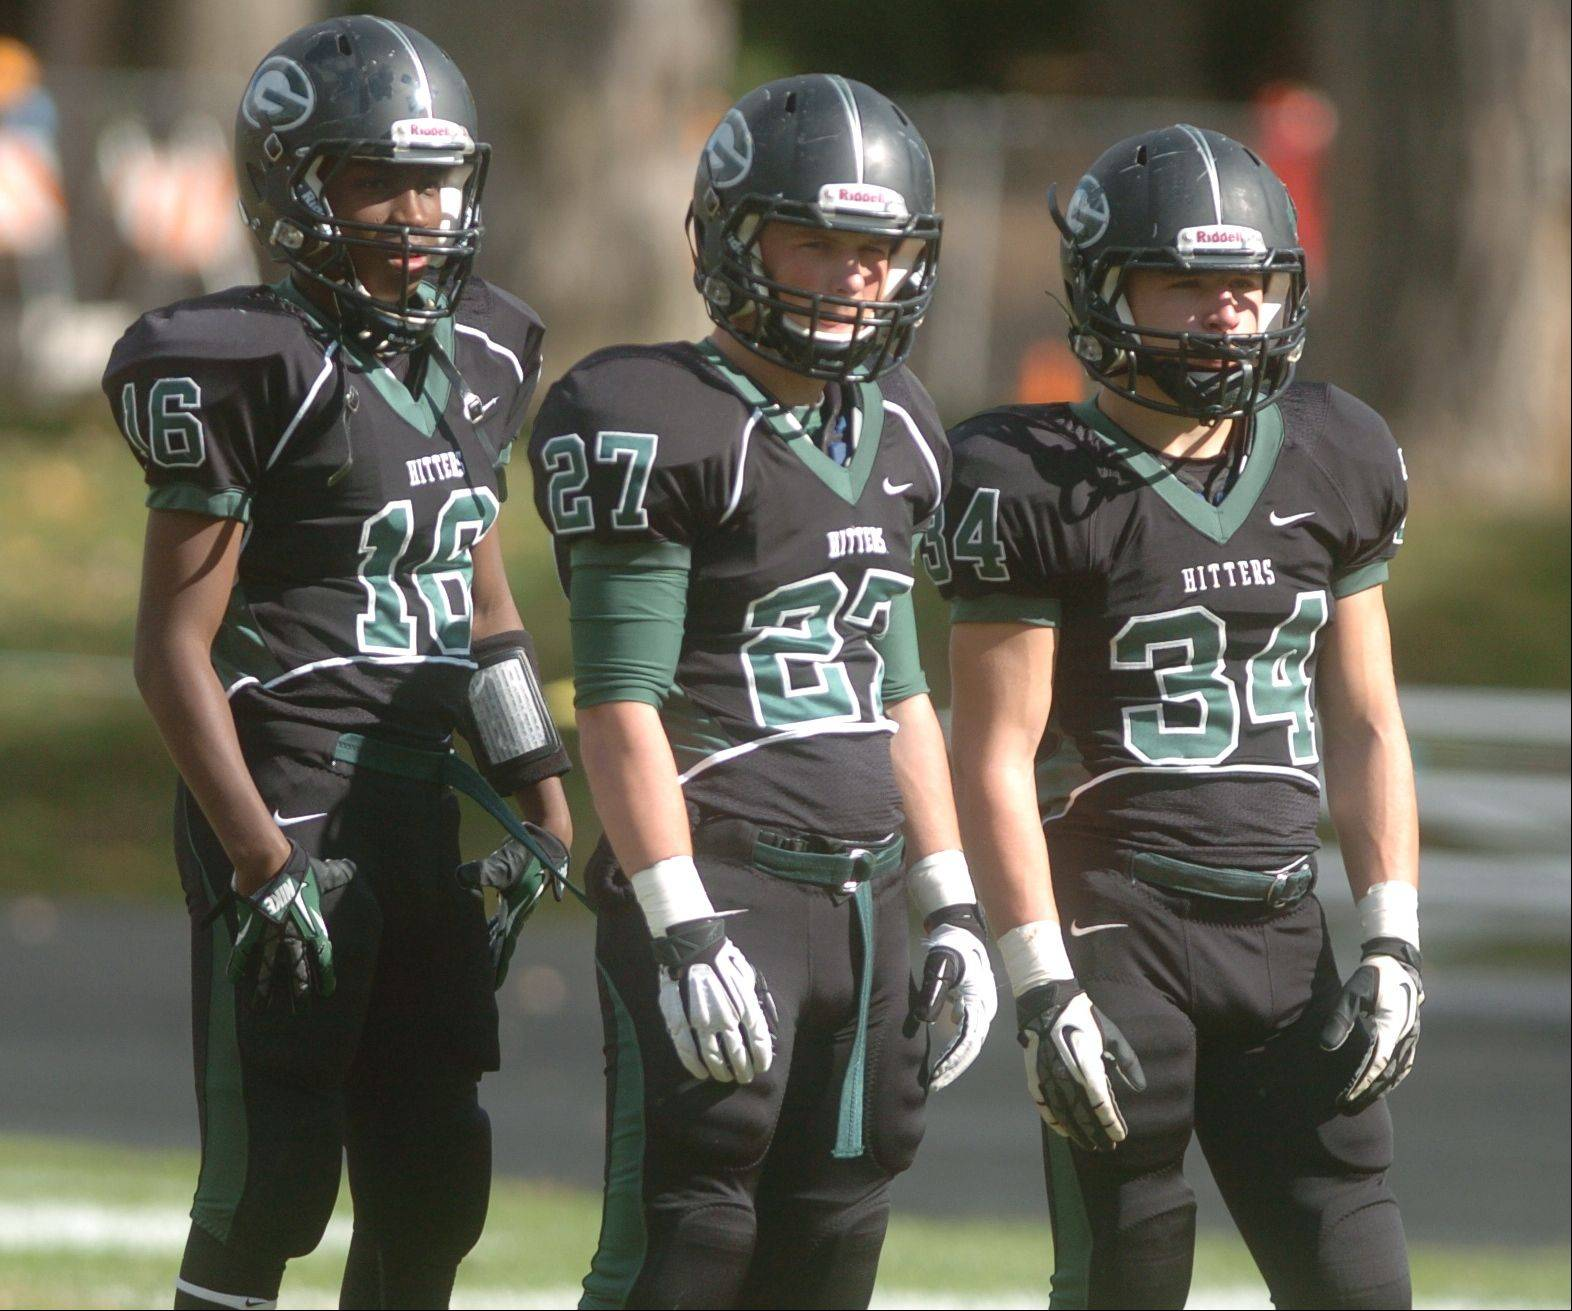 Photos from the Downers Grove North at Glenbard West football game, Saturday, October 20 in Glen Ellyn.